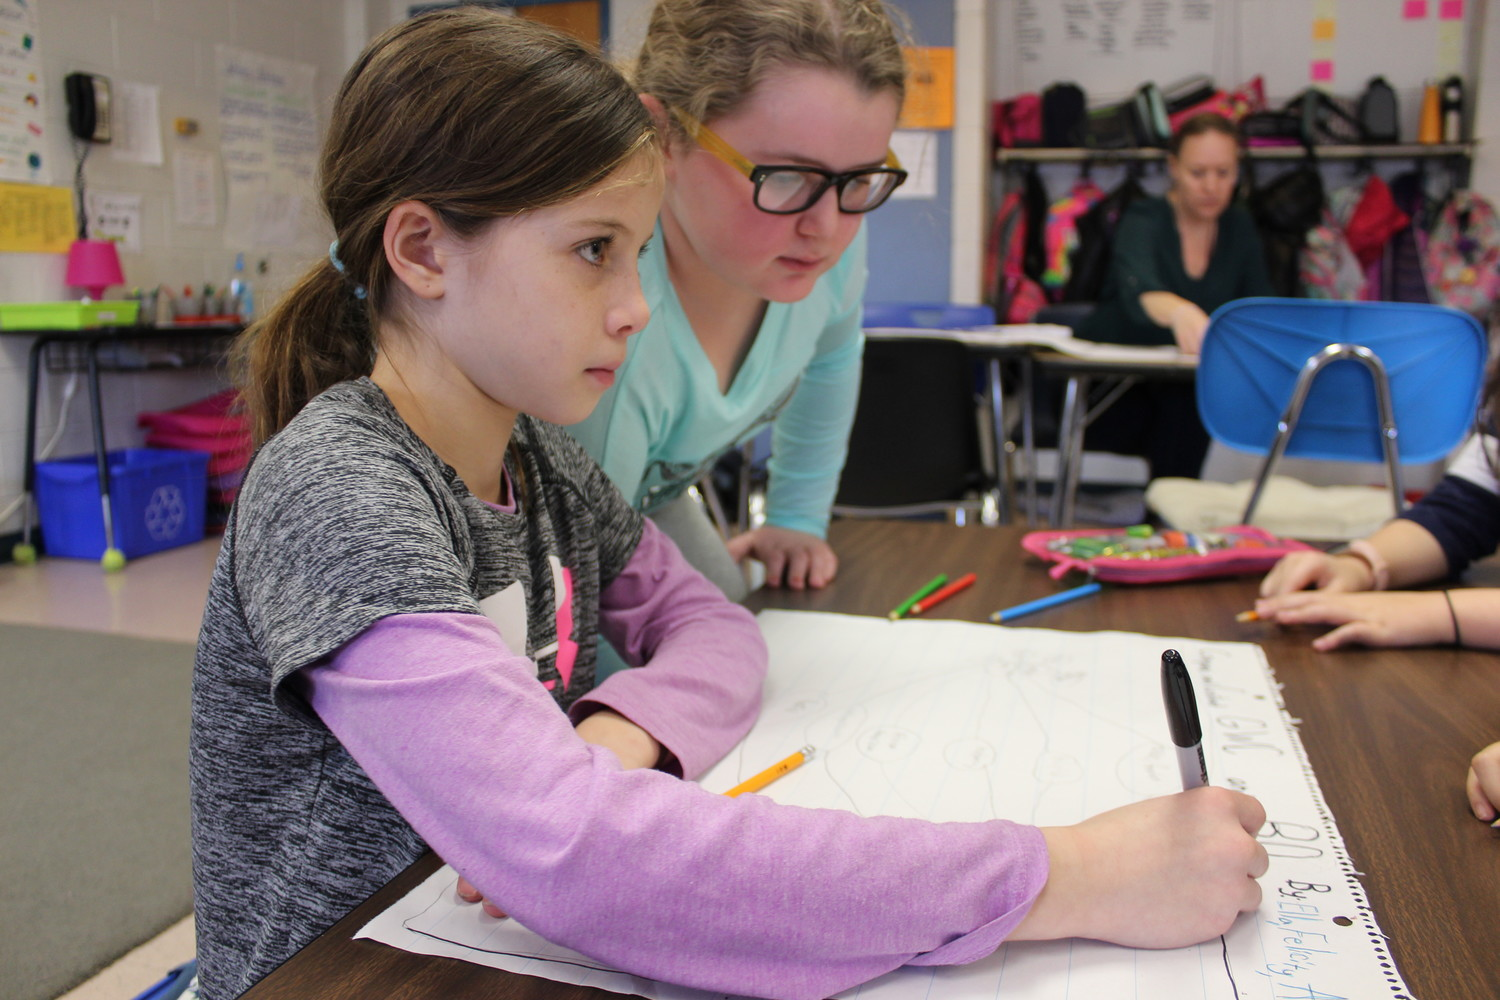 Fourth-graders Emma Cooney and Felicity Caracciolo worked together to make a bubble map comparing and contrasting George Washington Carver and Barack Obama during Black History Month lessons at Rhame Avenue Elementary School.